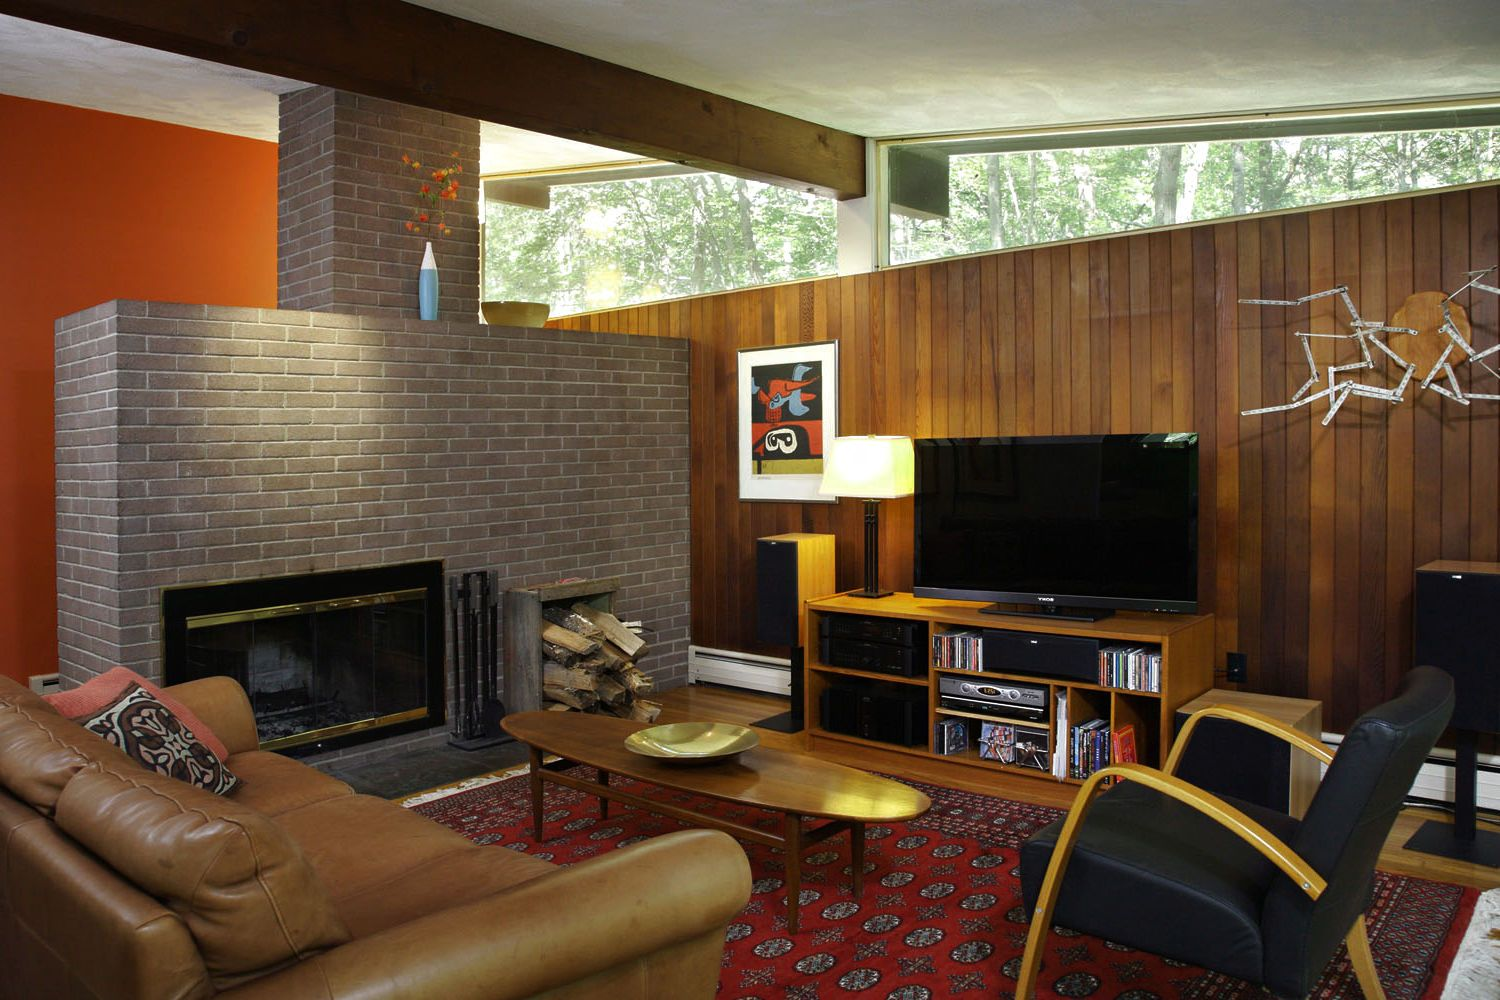 14 mid century modern day living space style ideas pinkous